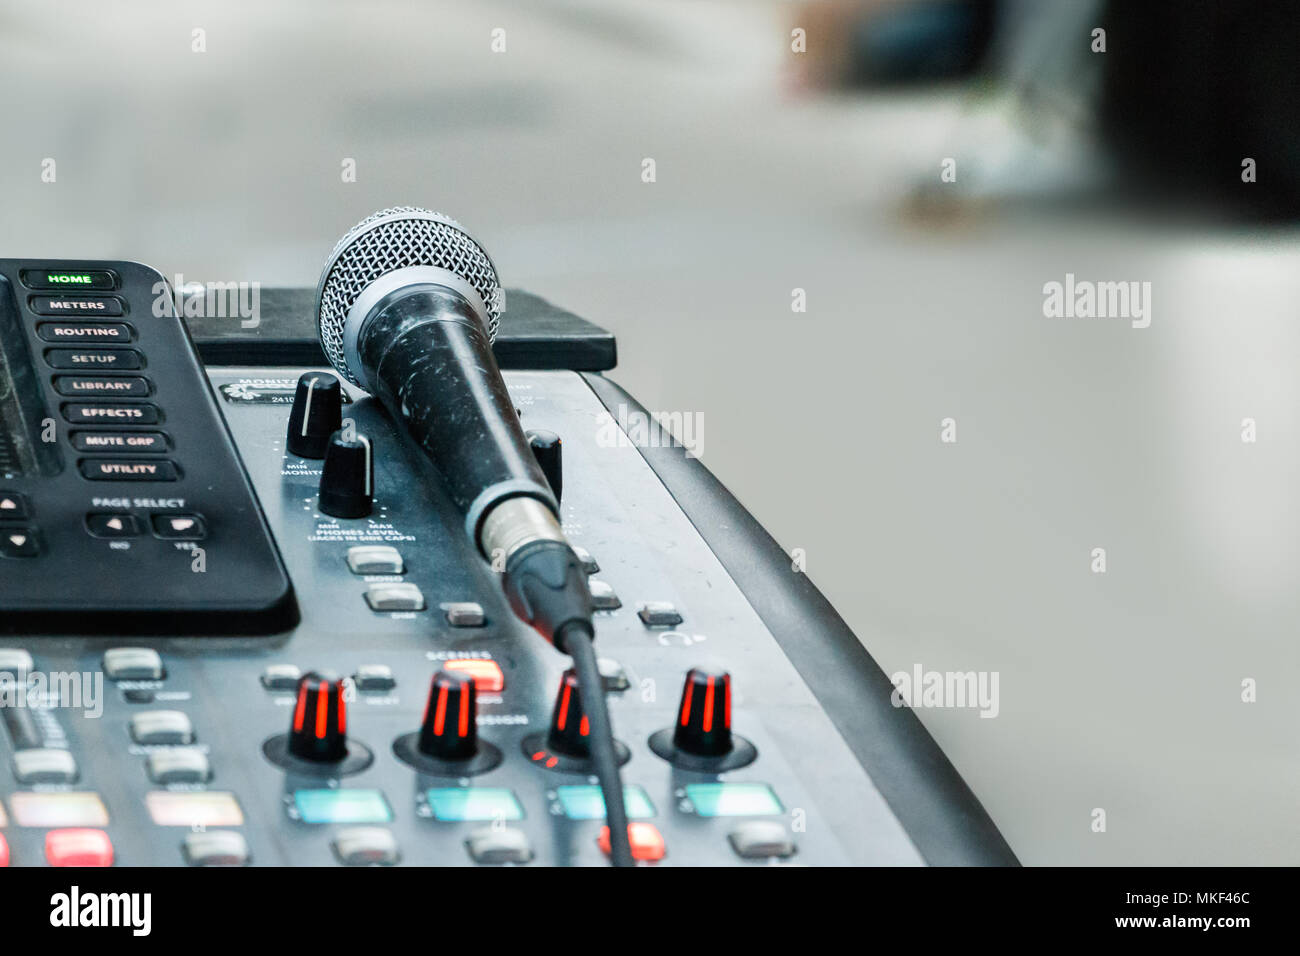 Detail of a sound mixer and a microphone placed outdoors, natural